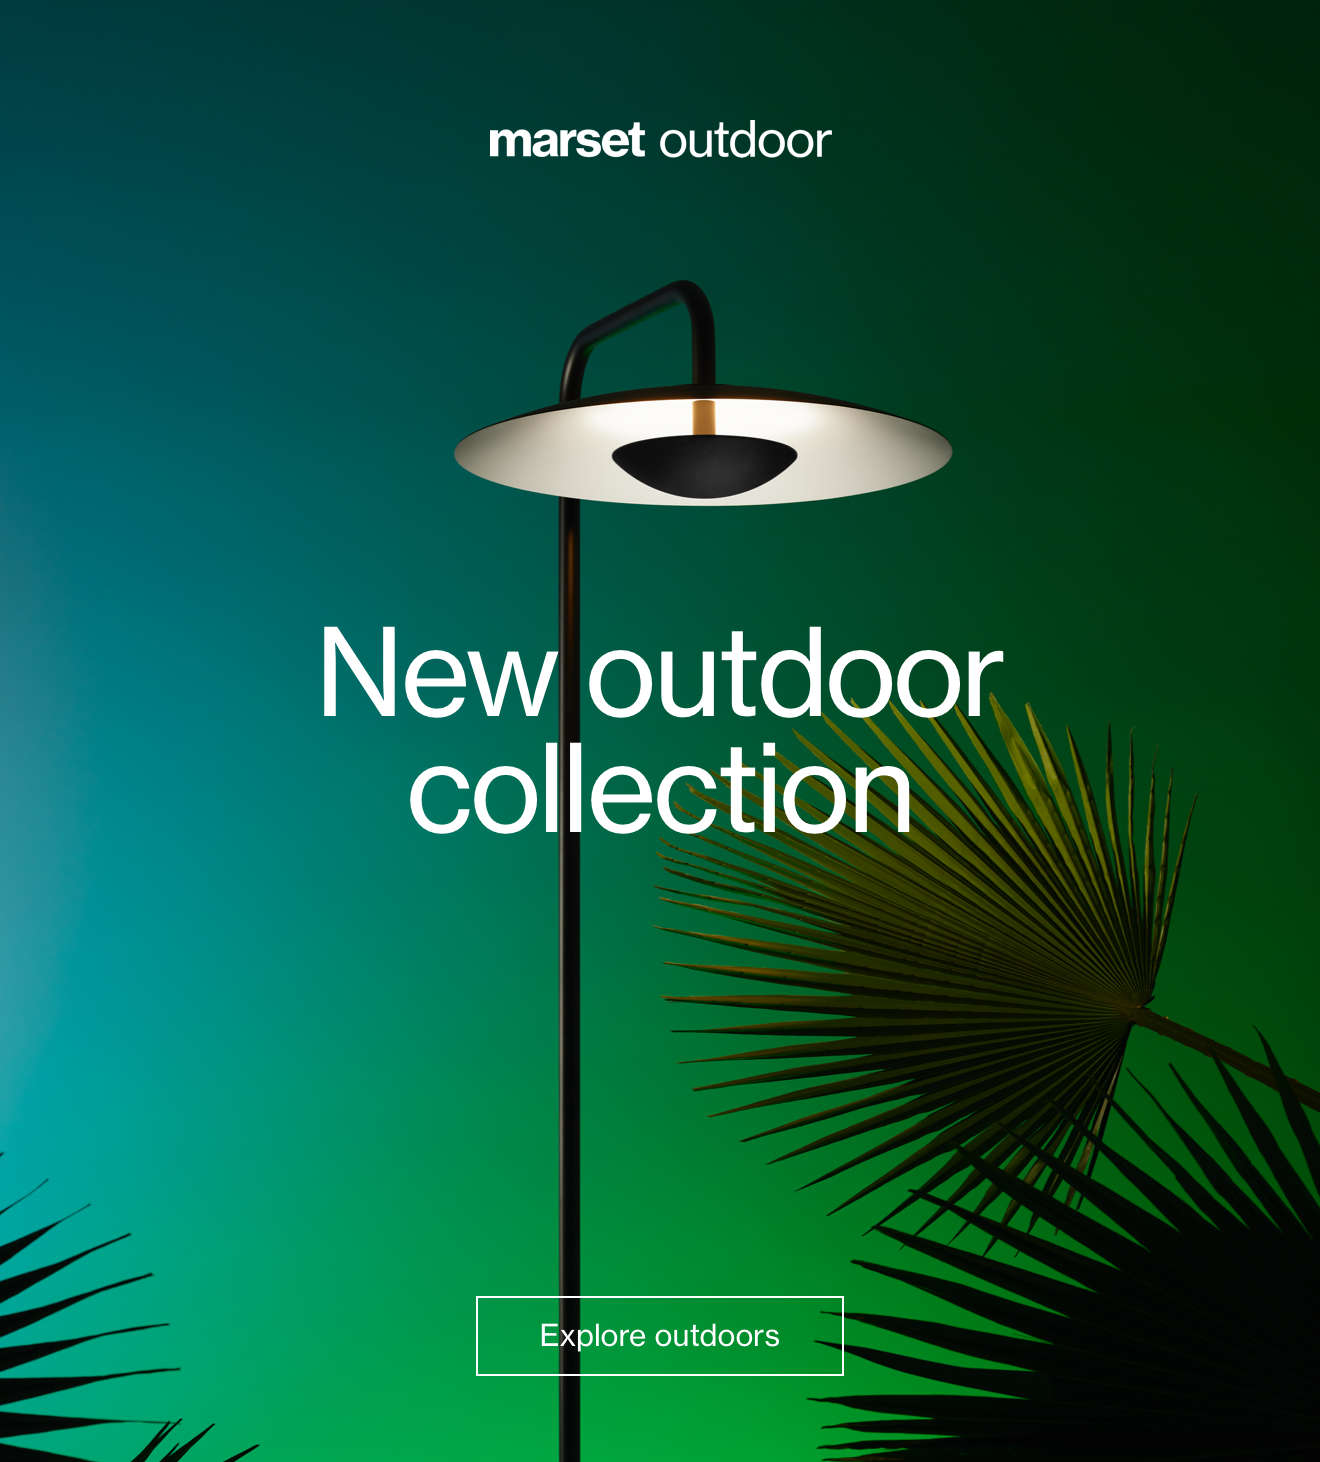 New outdoor collection